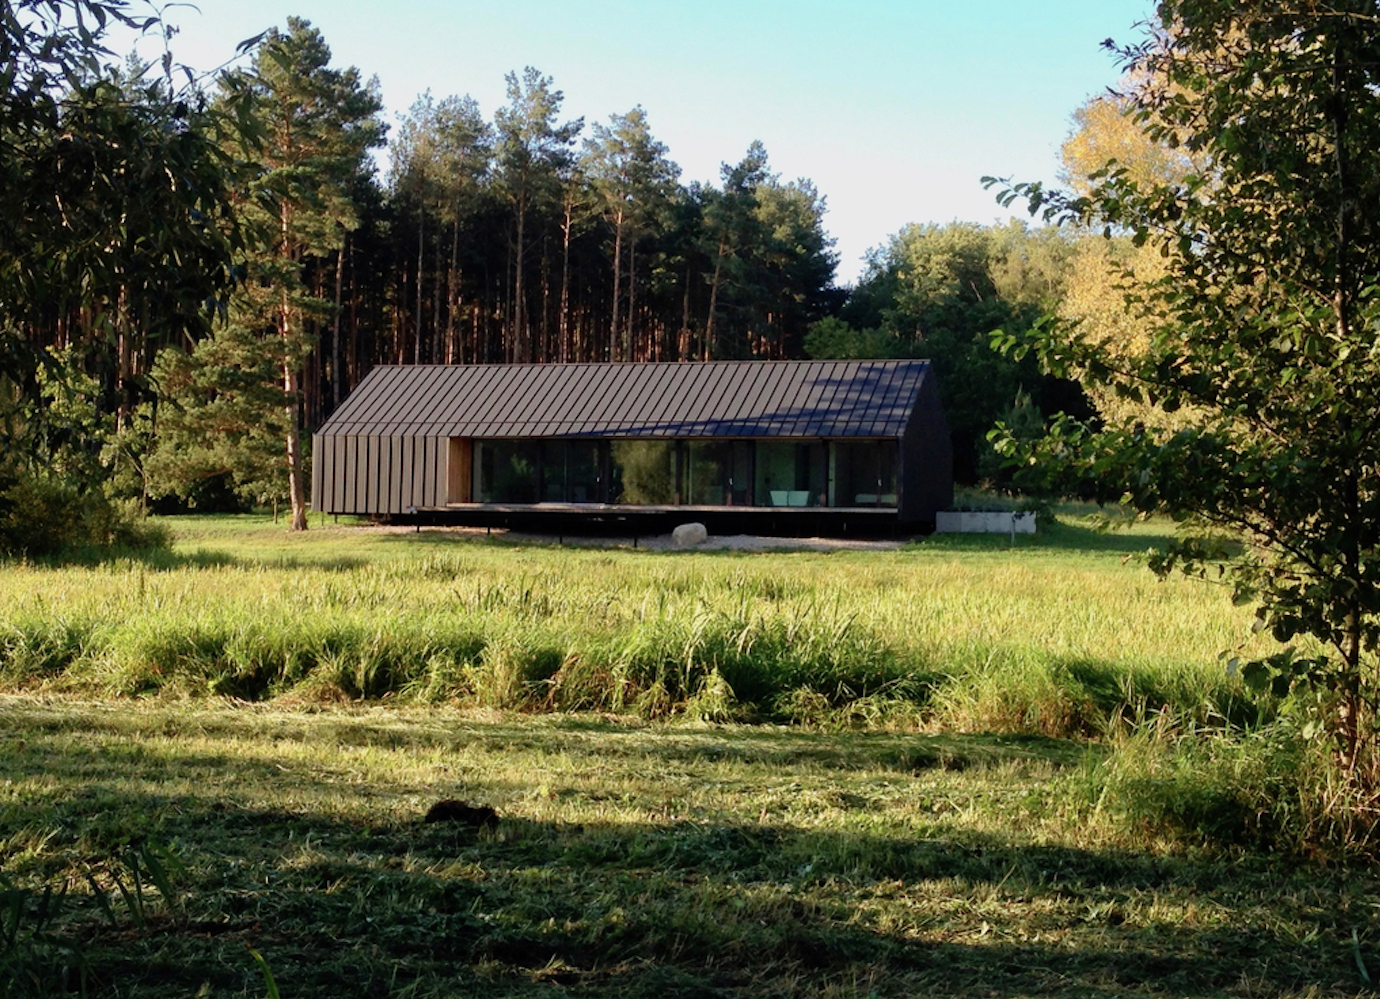 Built in a Polish nature reserve, this minimalist house blends into its natural home